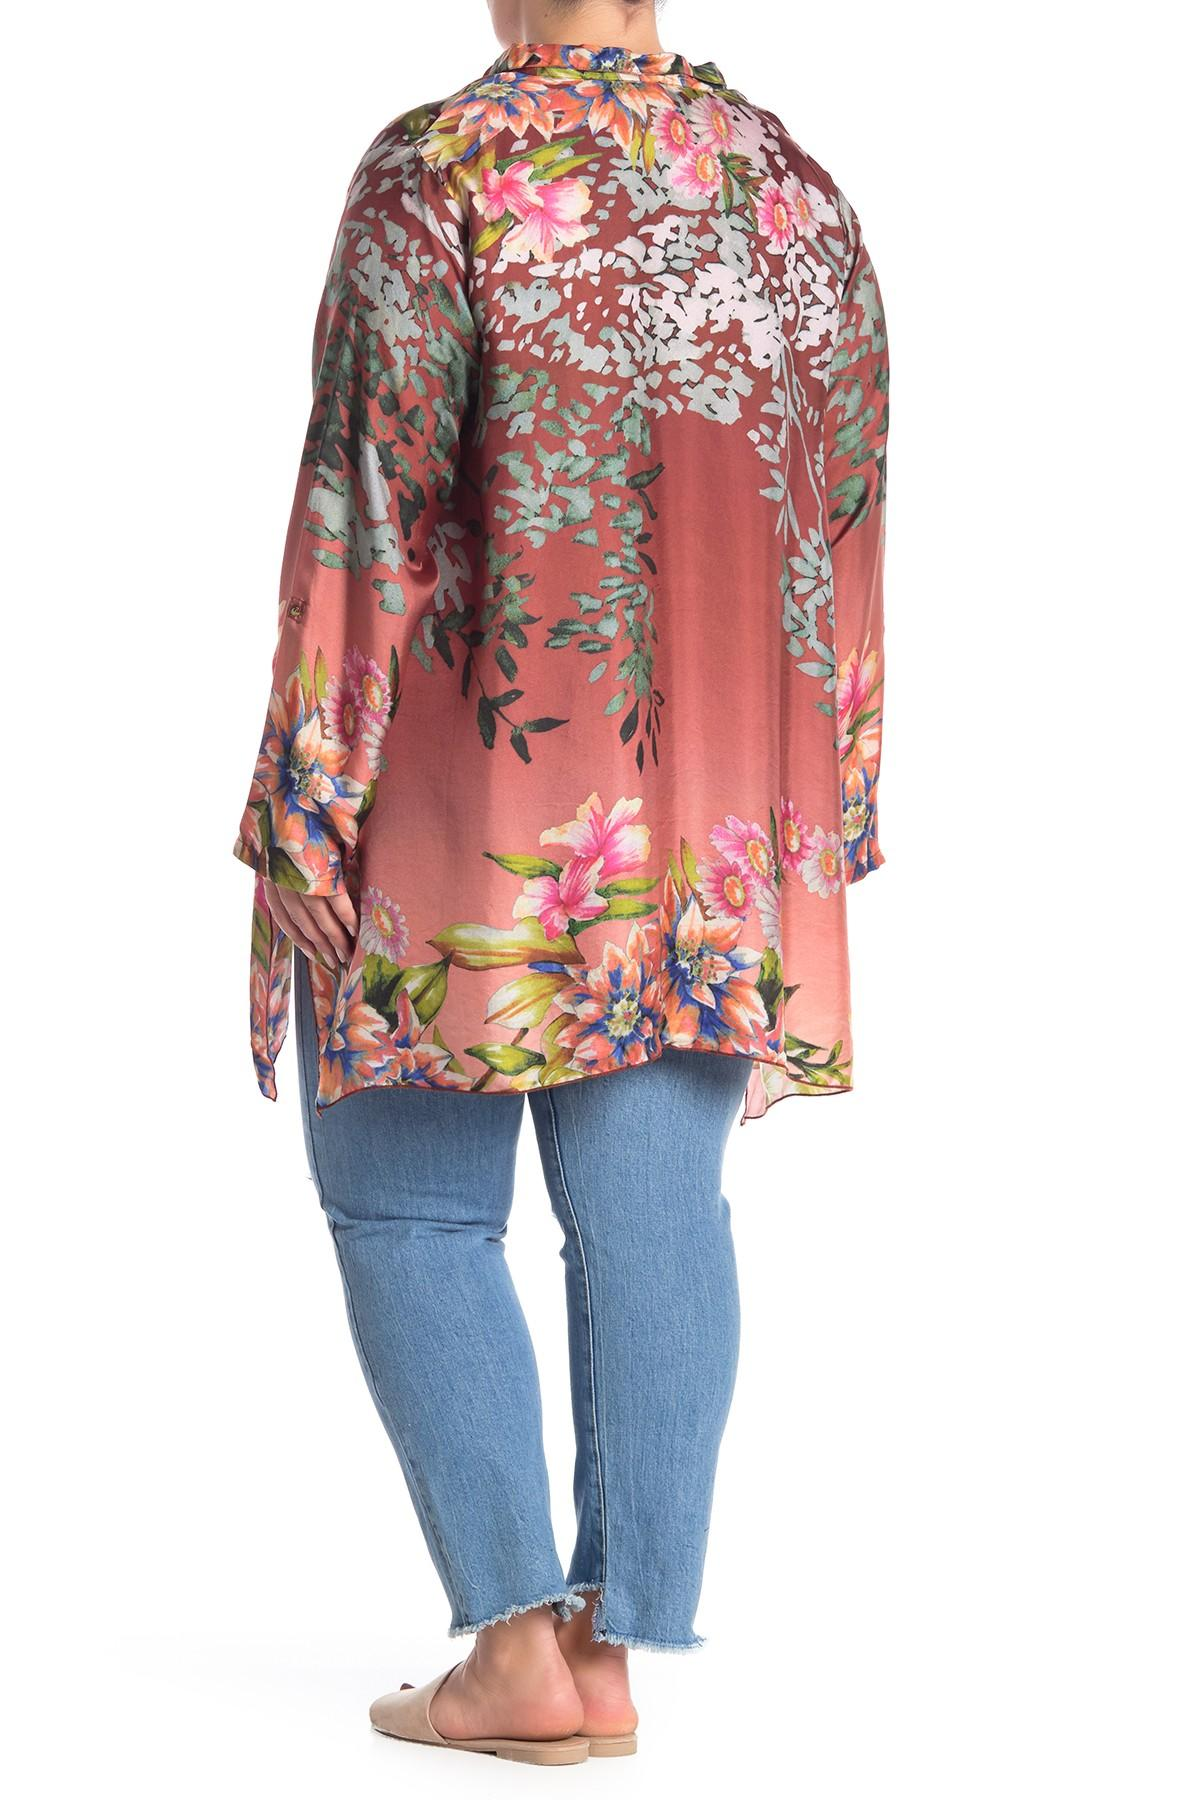 Lyst - Johnny Was Floral Print Silk Tunic (plus Size)